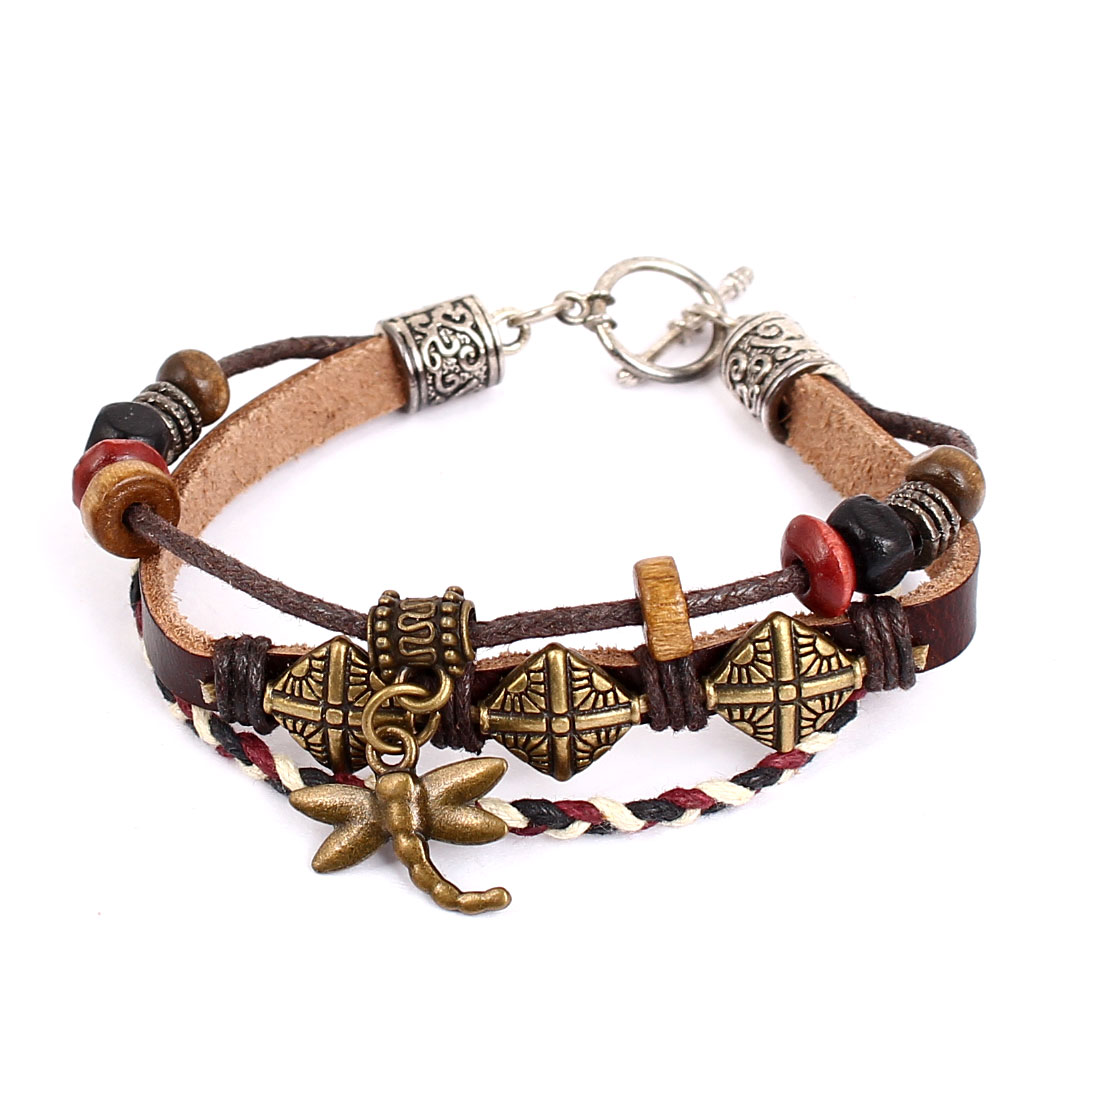 Lady Retro Style Metal Dragonfly Pendant Interlocking Faux Leather Wrist Bracelet